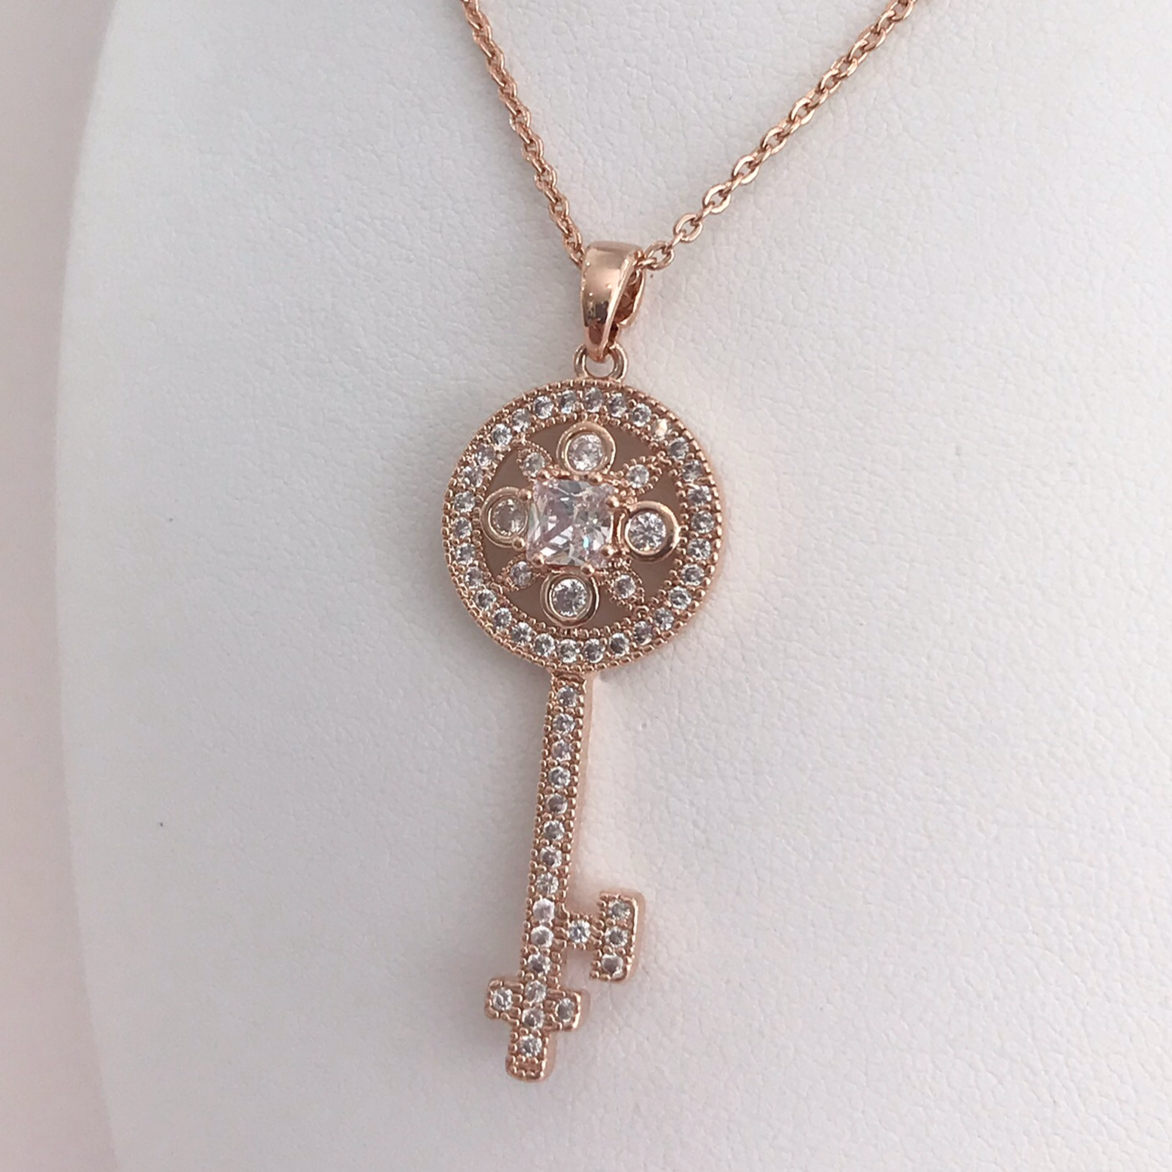 Gorgeous, Delicate and Fine Key Rhinestone Necklace